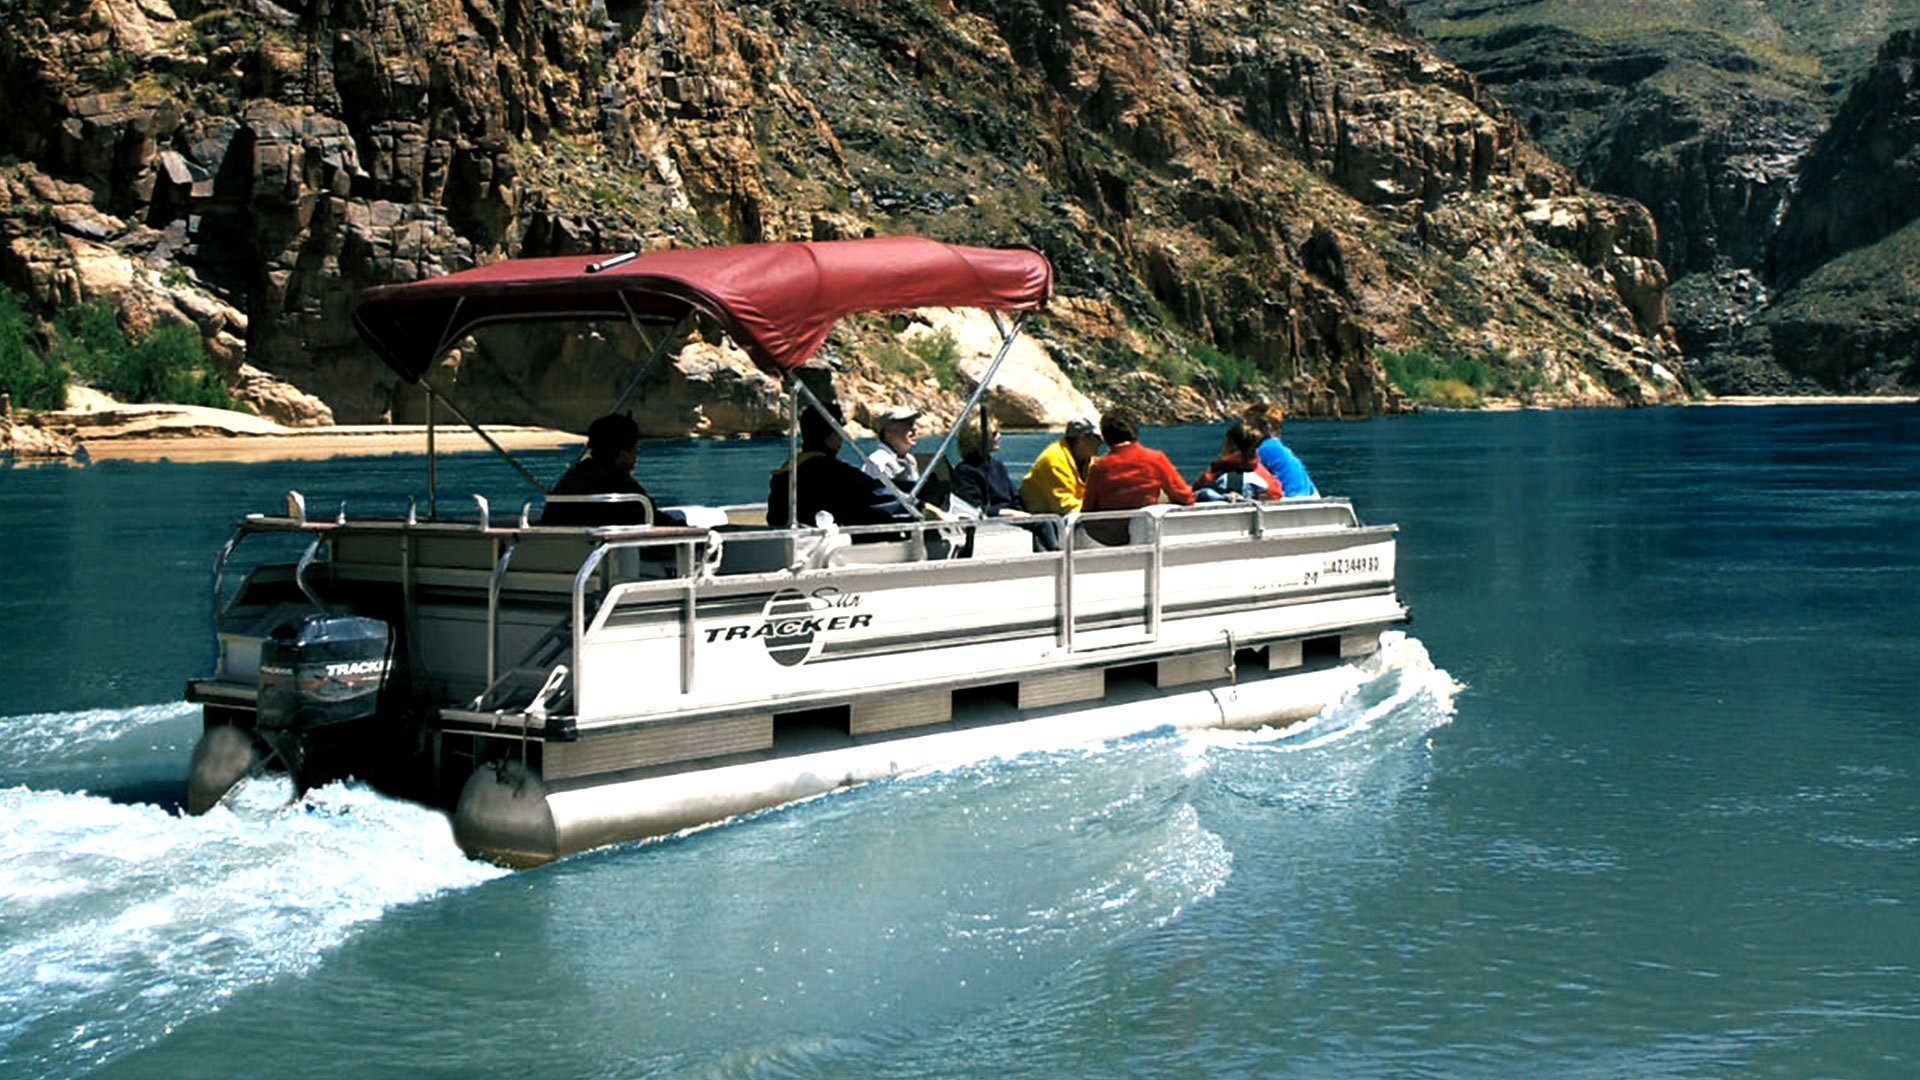 Passageiros a bordo de uma balsa subindo o Colorado River, no Grand Canyon West